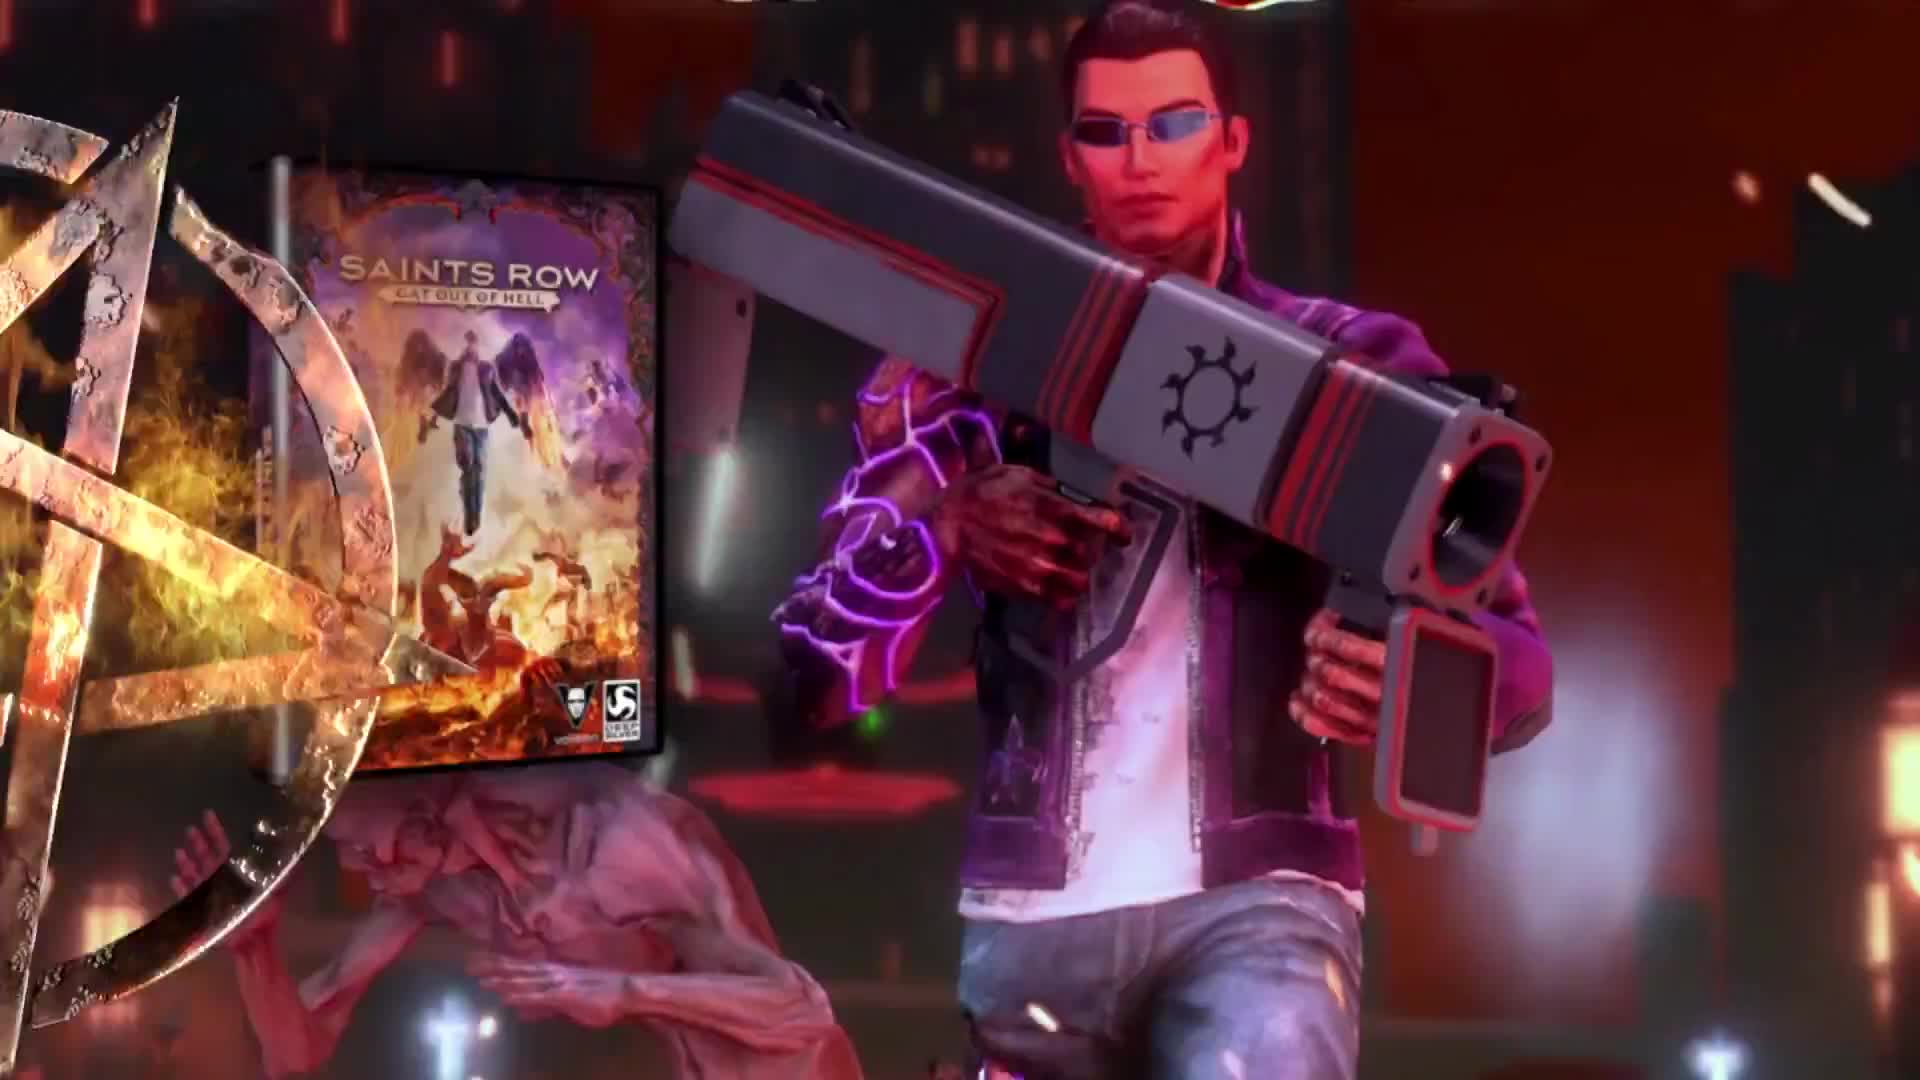 Saints row 4 nackt cheats naked images